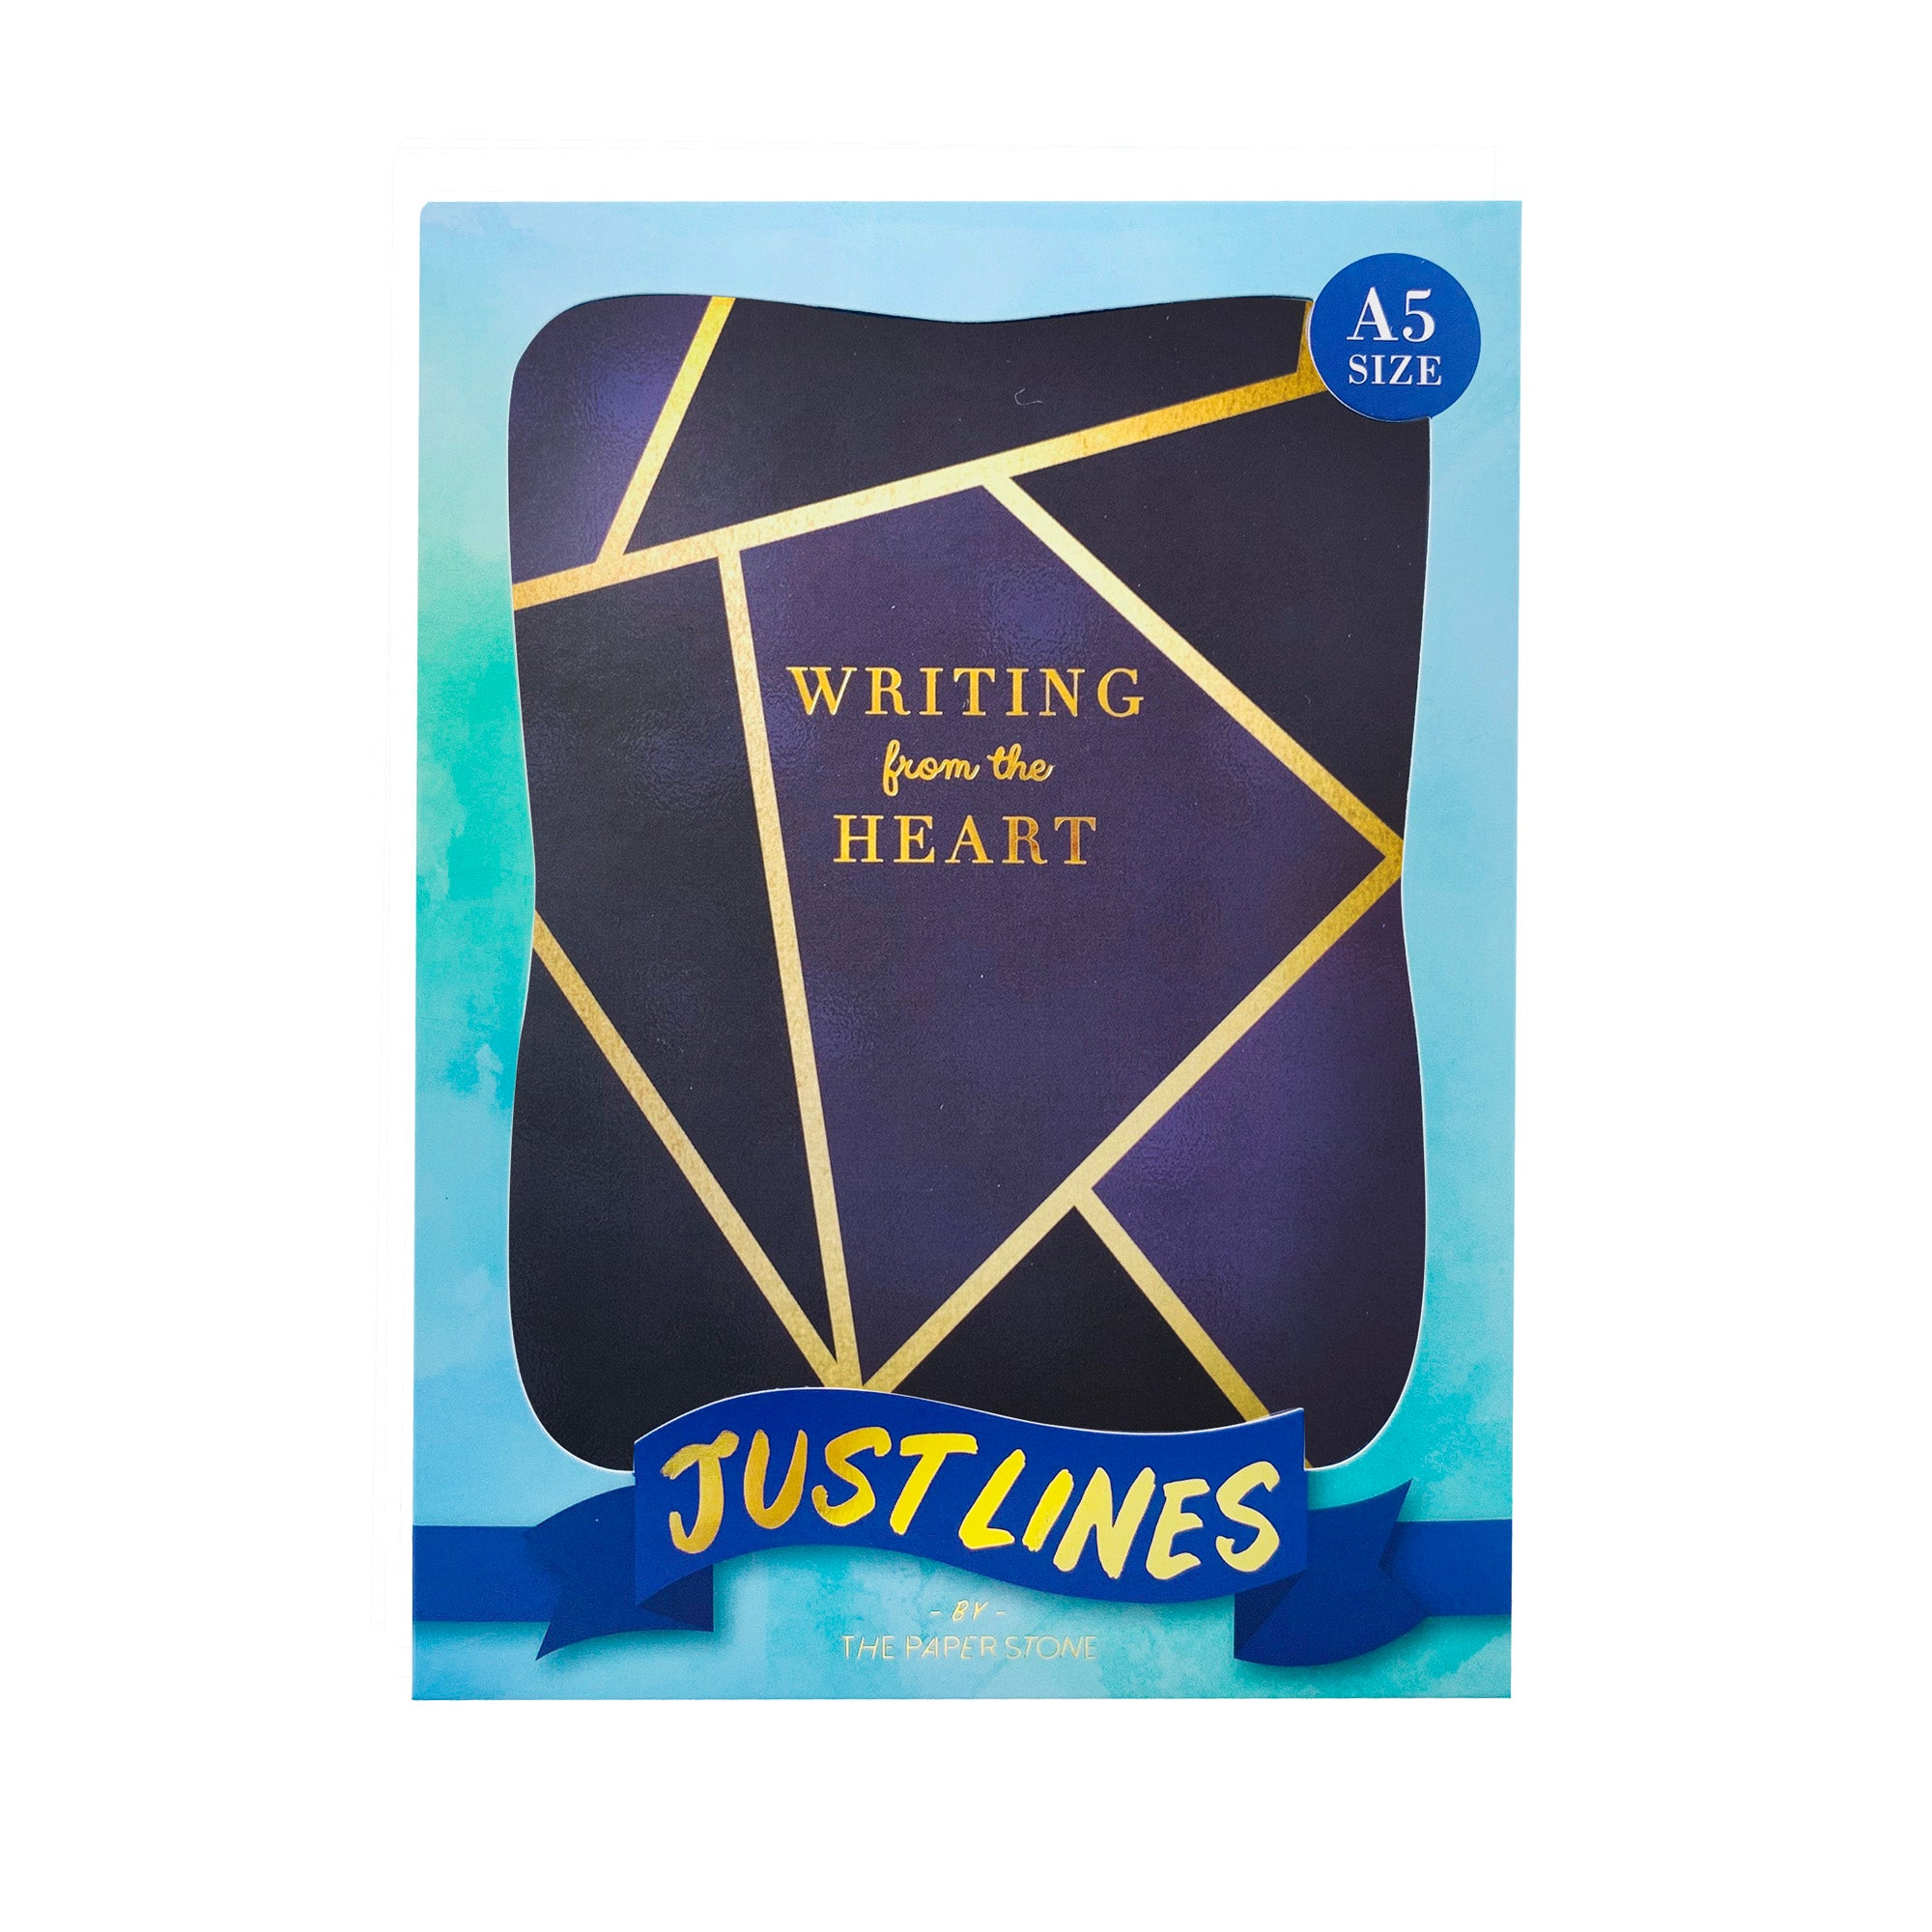 Just Lines - Writing from the Heart